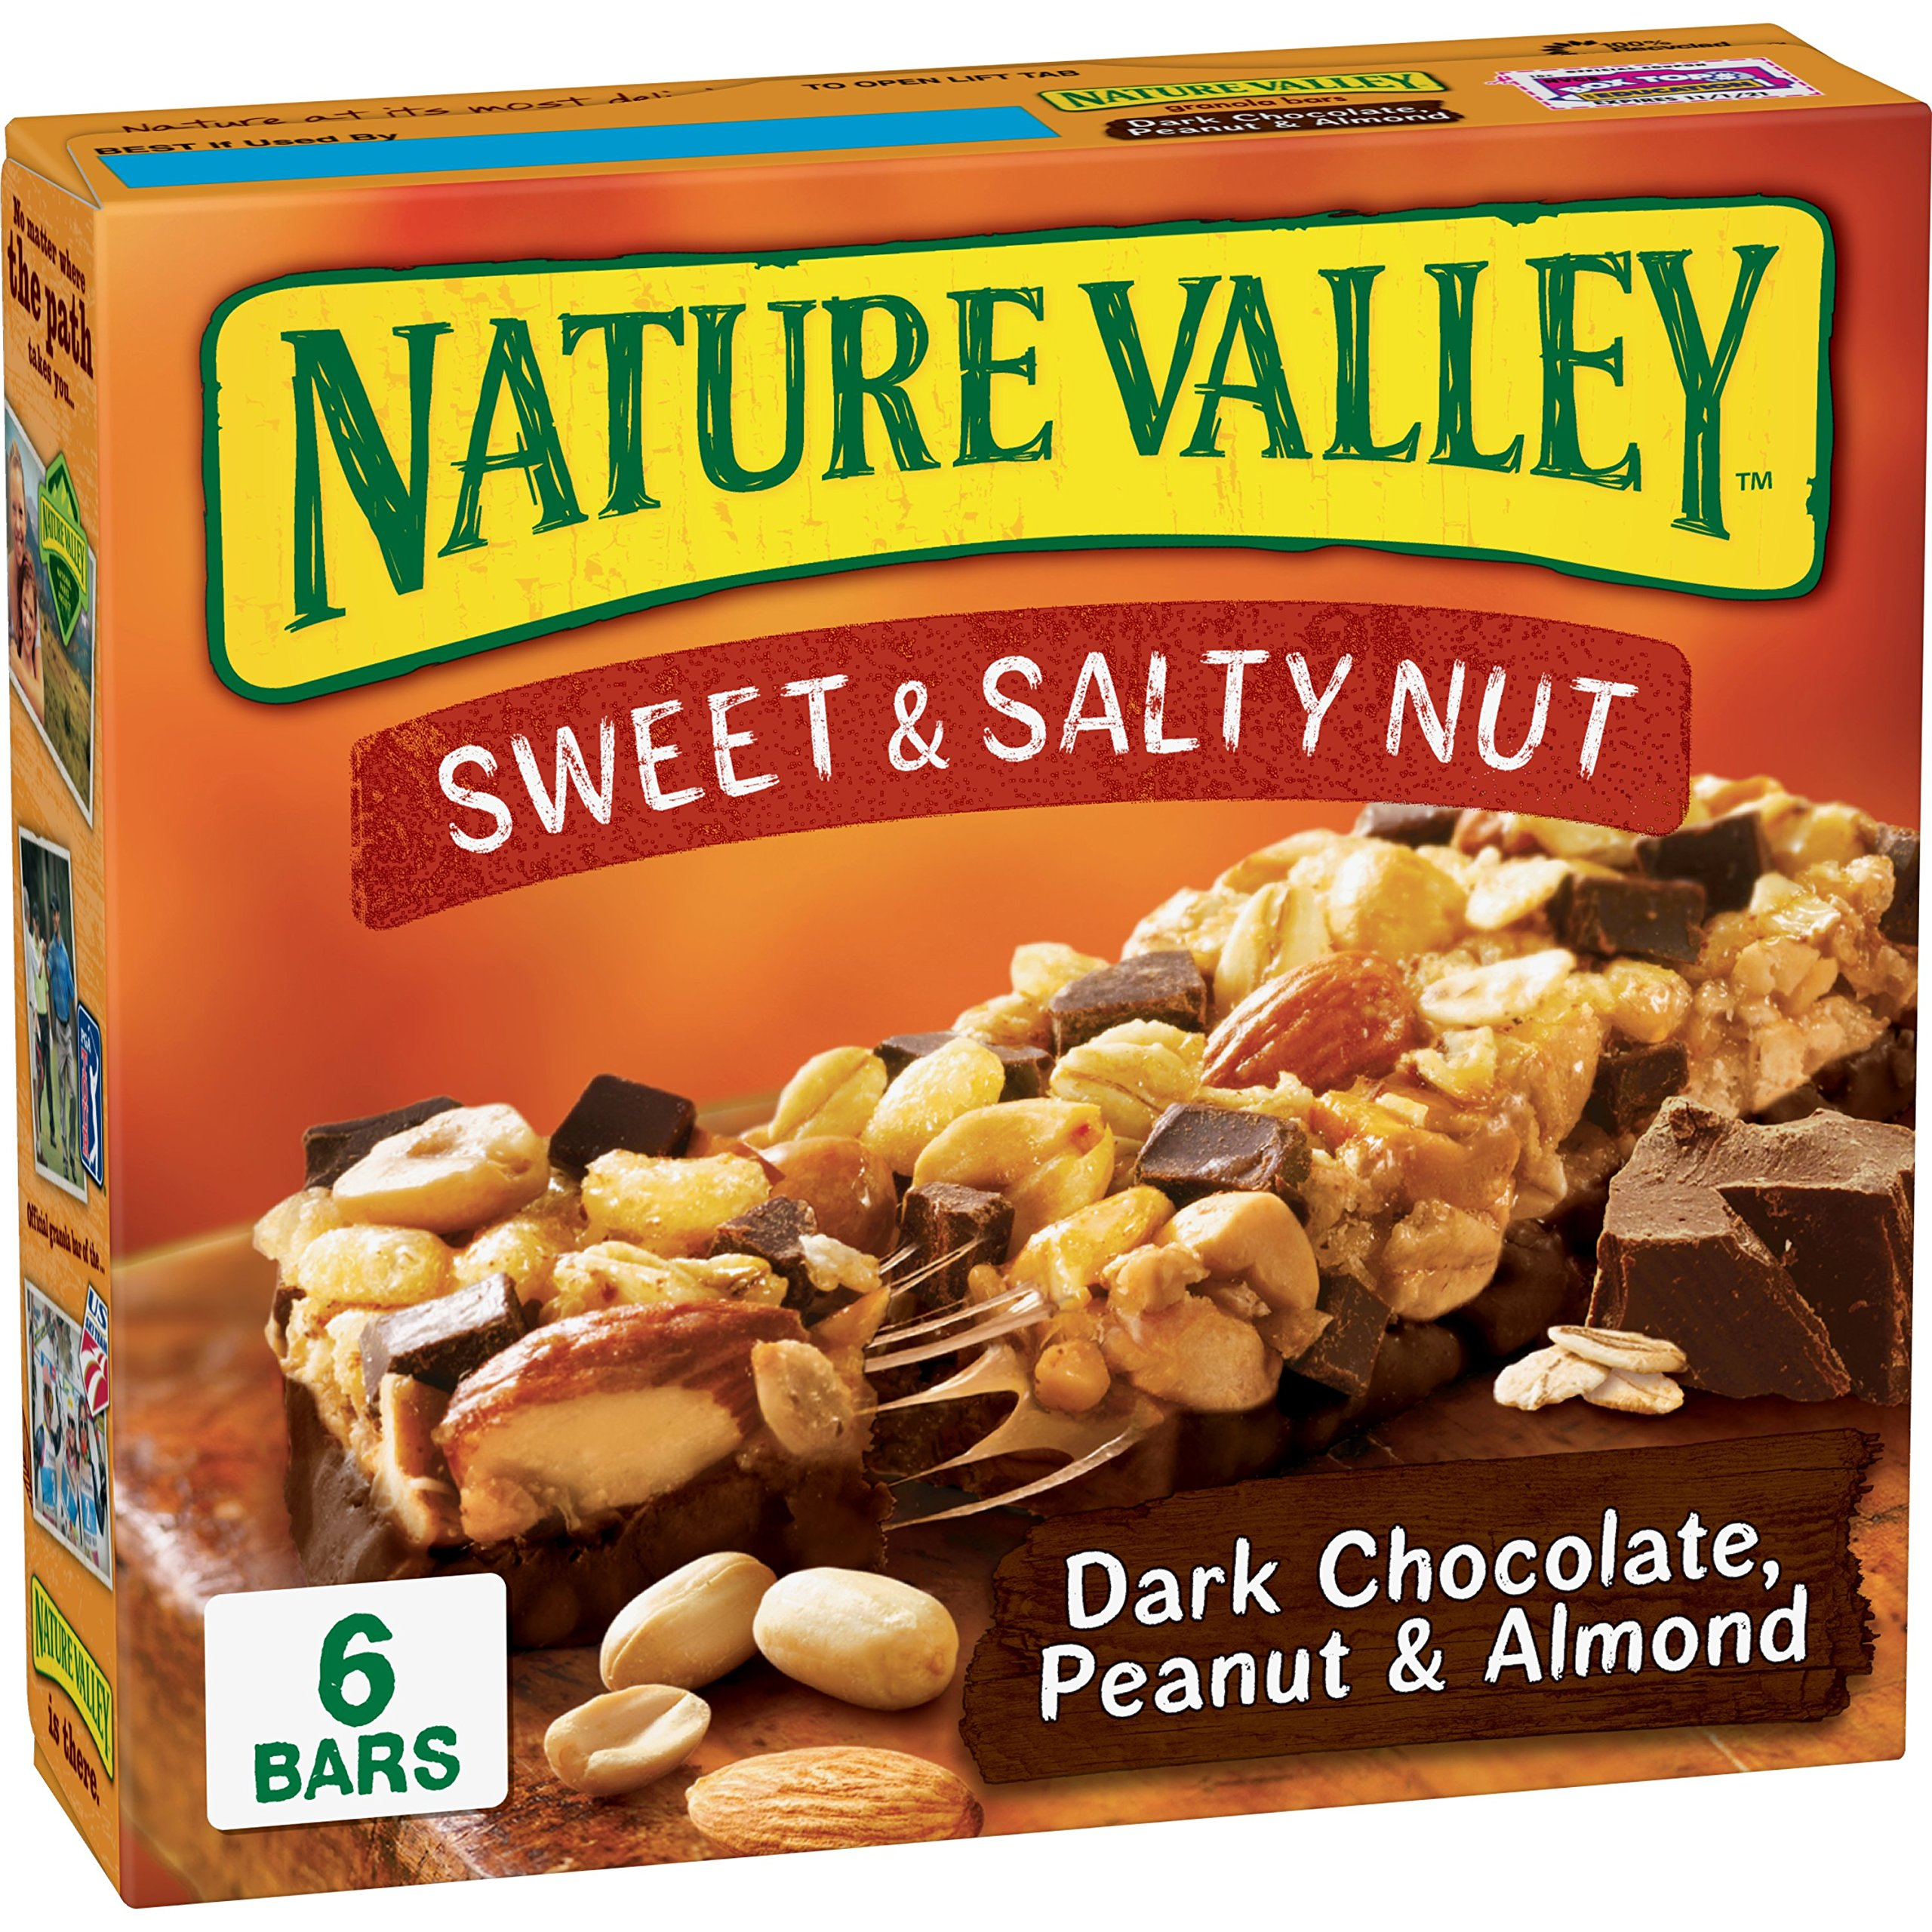 General Mills Nature Valley Sweet and Salty Dark Chocolate Peanut,1.24 oz,6 count